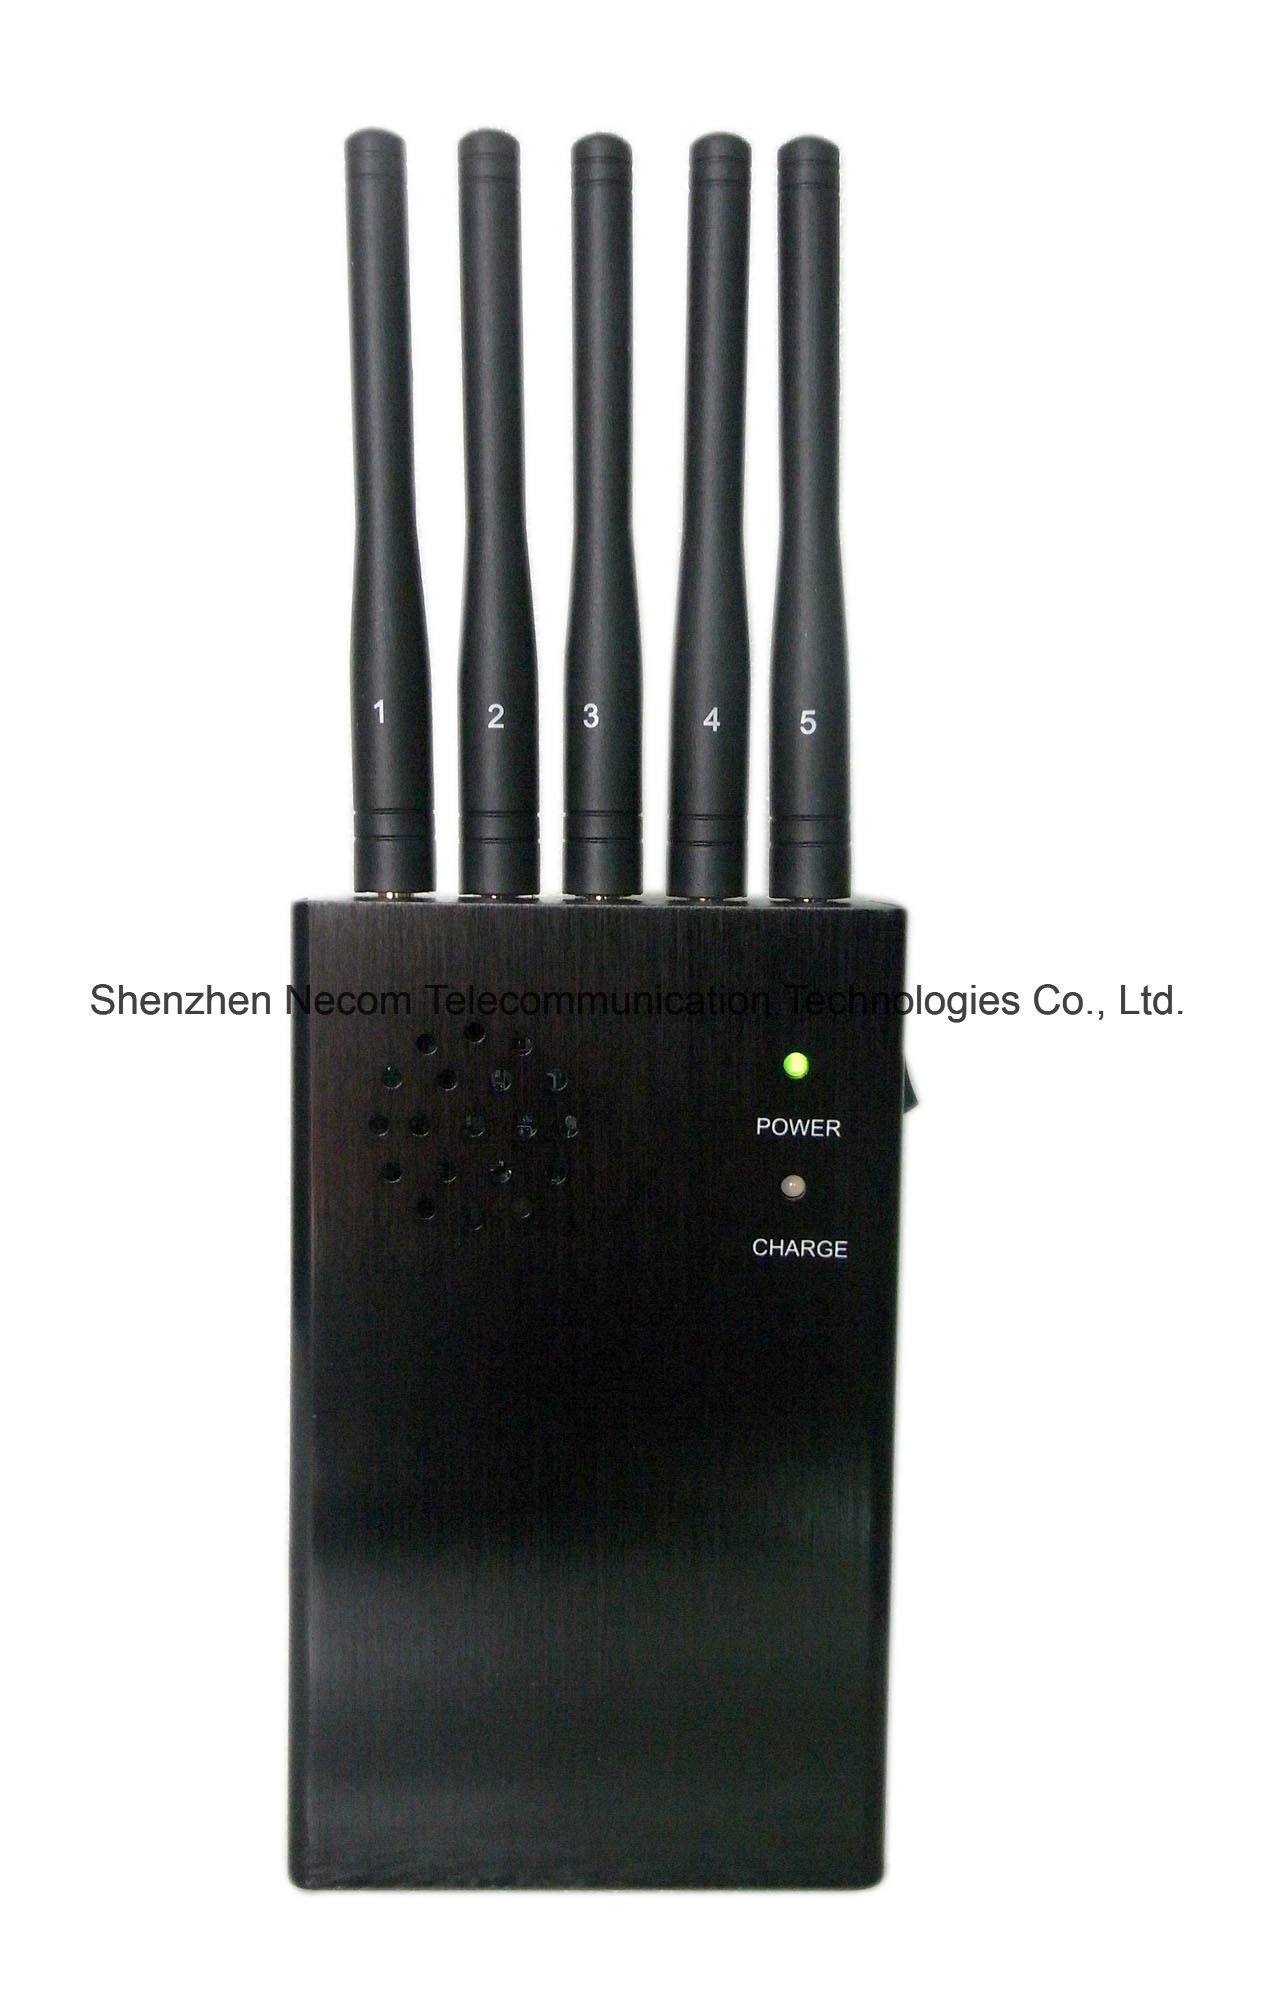 phone jammer china deploys - China GPS and Cell Phone Signal Jammer with Car Charger,Portable 6 Bands Blocker for 3G/4G Cellular Phone,WiFi,GPS,Lojack,Portable GPS Mobile Jammer with Car Charger - China 5 Band Signal Blockers, Five Antennas Jammers